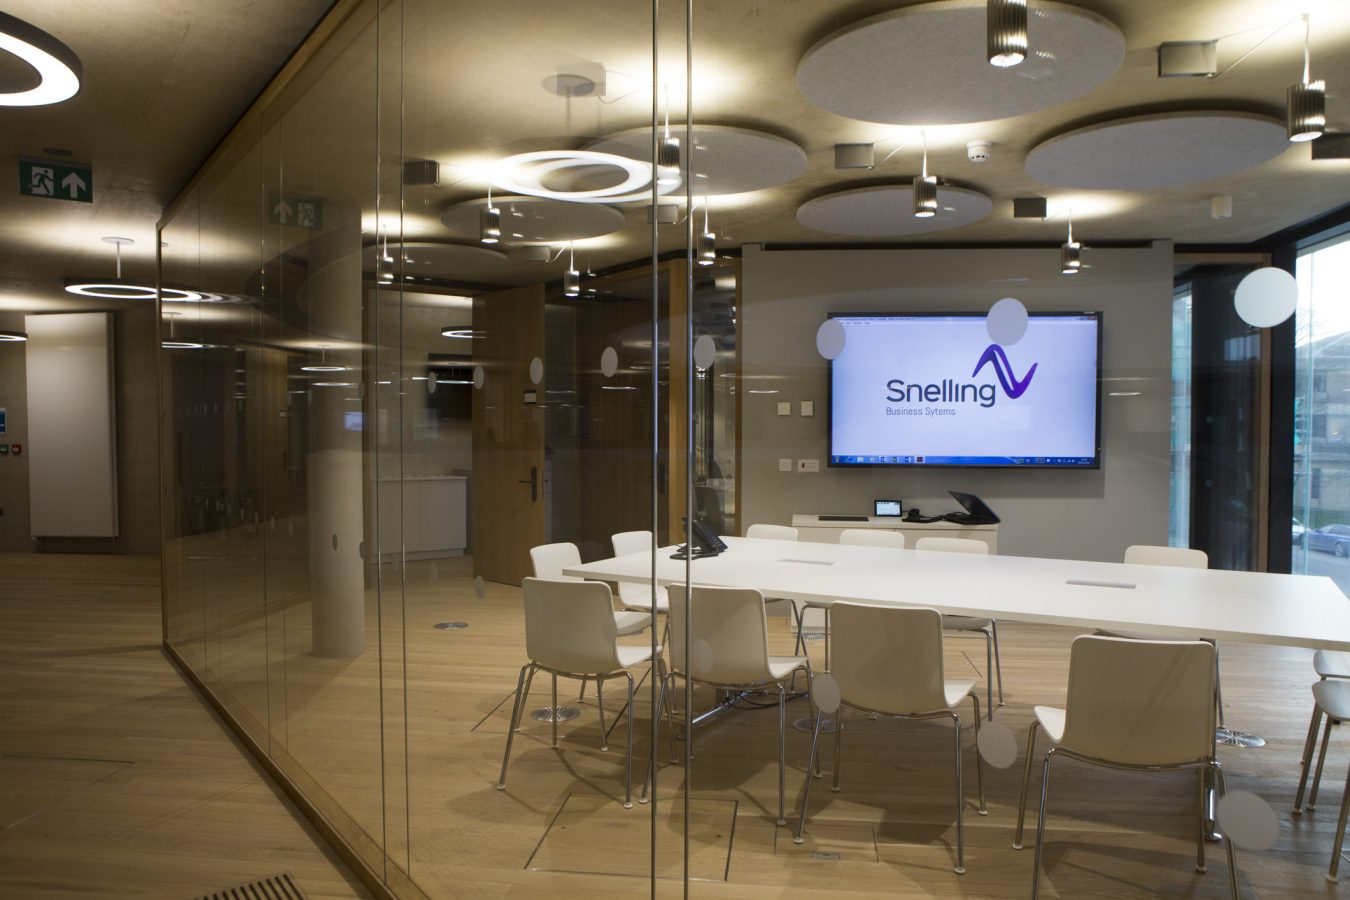 Snelling | Meeting Room Audio Visual Integration